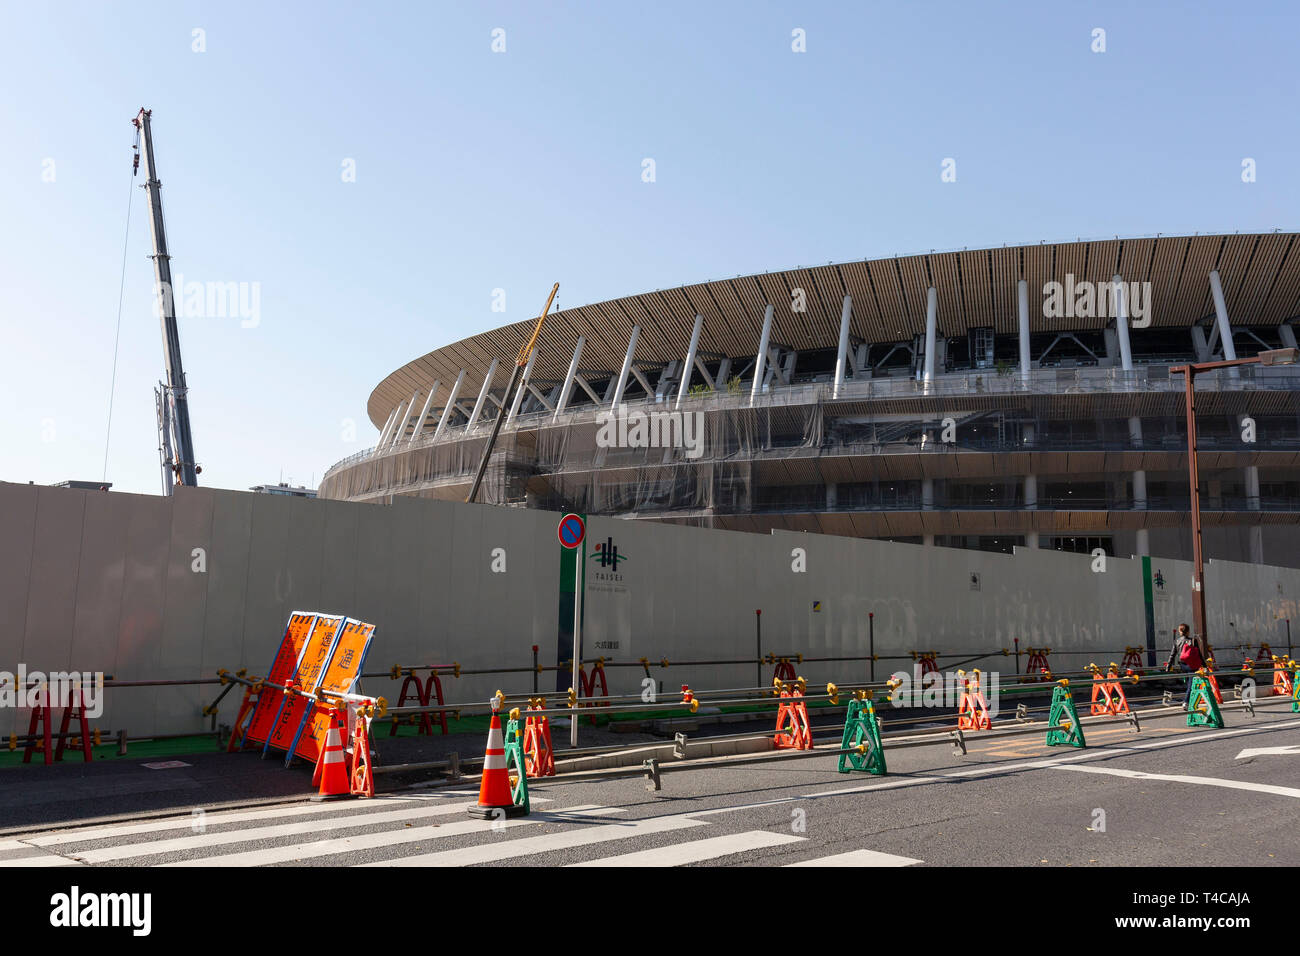 Tokyo, Japan. 16th Apr, 2019. Construction works continue at the New National Stadium. The New National Stadium will be the venue for 2020 Tokyo Olympic and Paralympic Games. Credit: Rodrigo Reyes Marin/AFLO/Alamy Live News Stock Photo